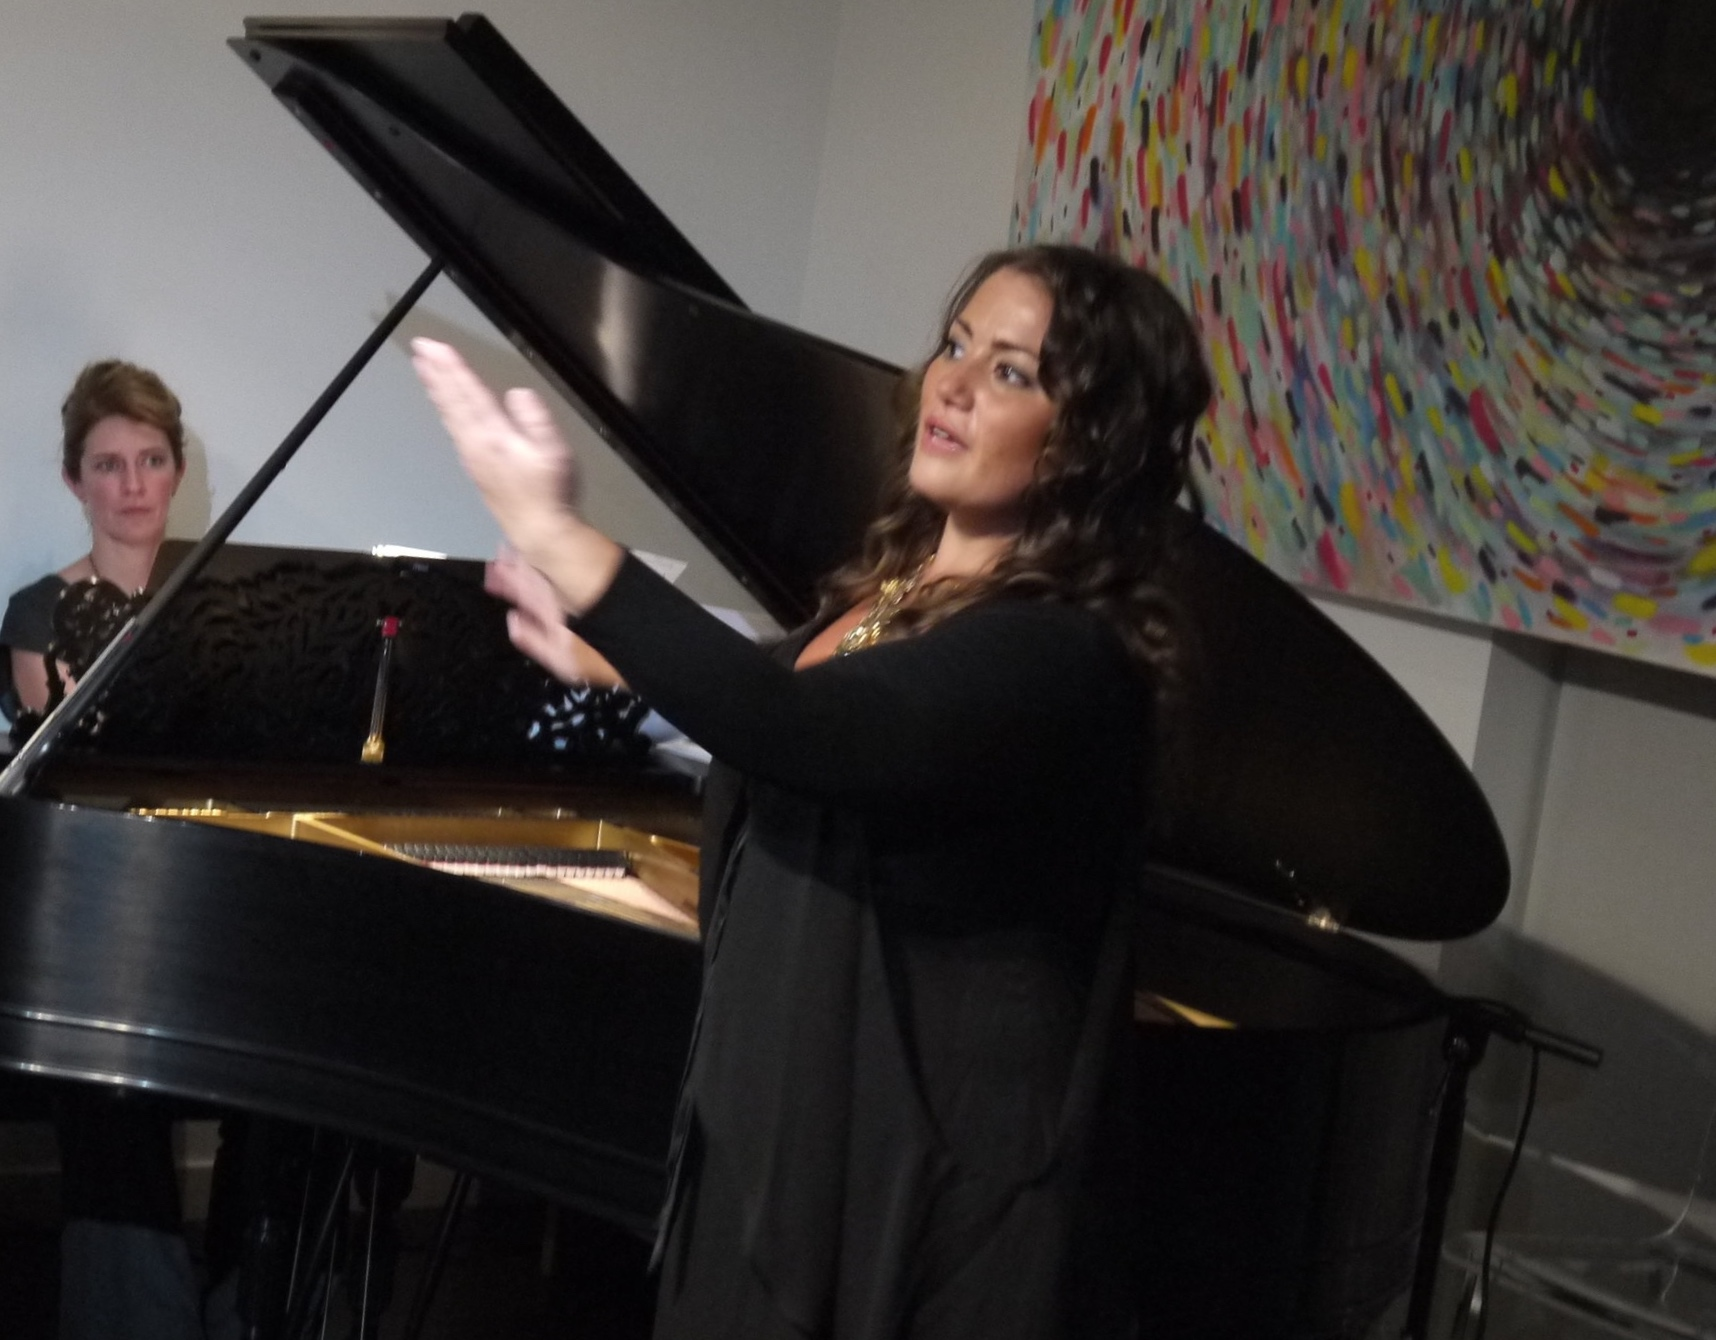 Mezzo Heather Johnson (New York Metropolitan Opera) shares her powerful voice and rigorous career path with the Canvas Lab audience.